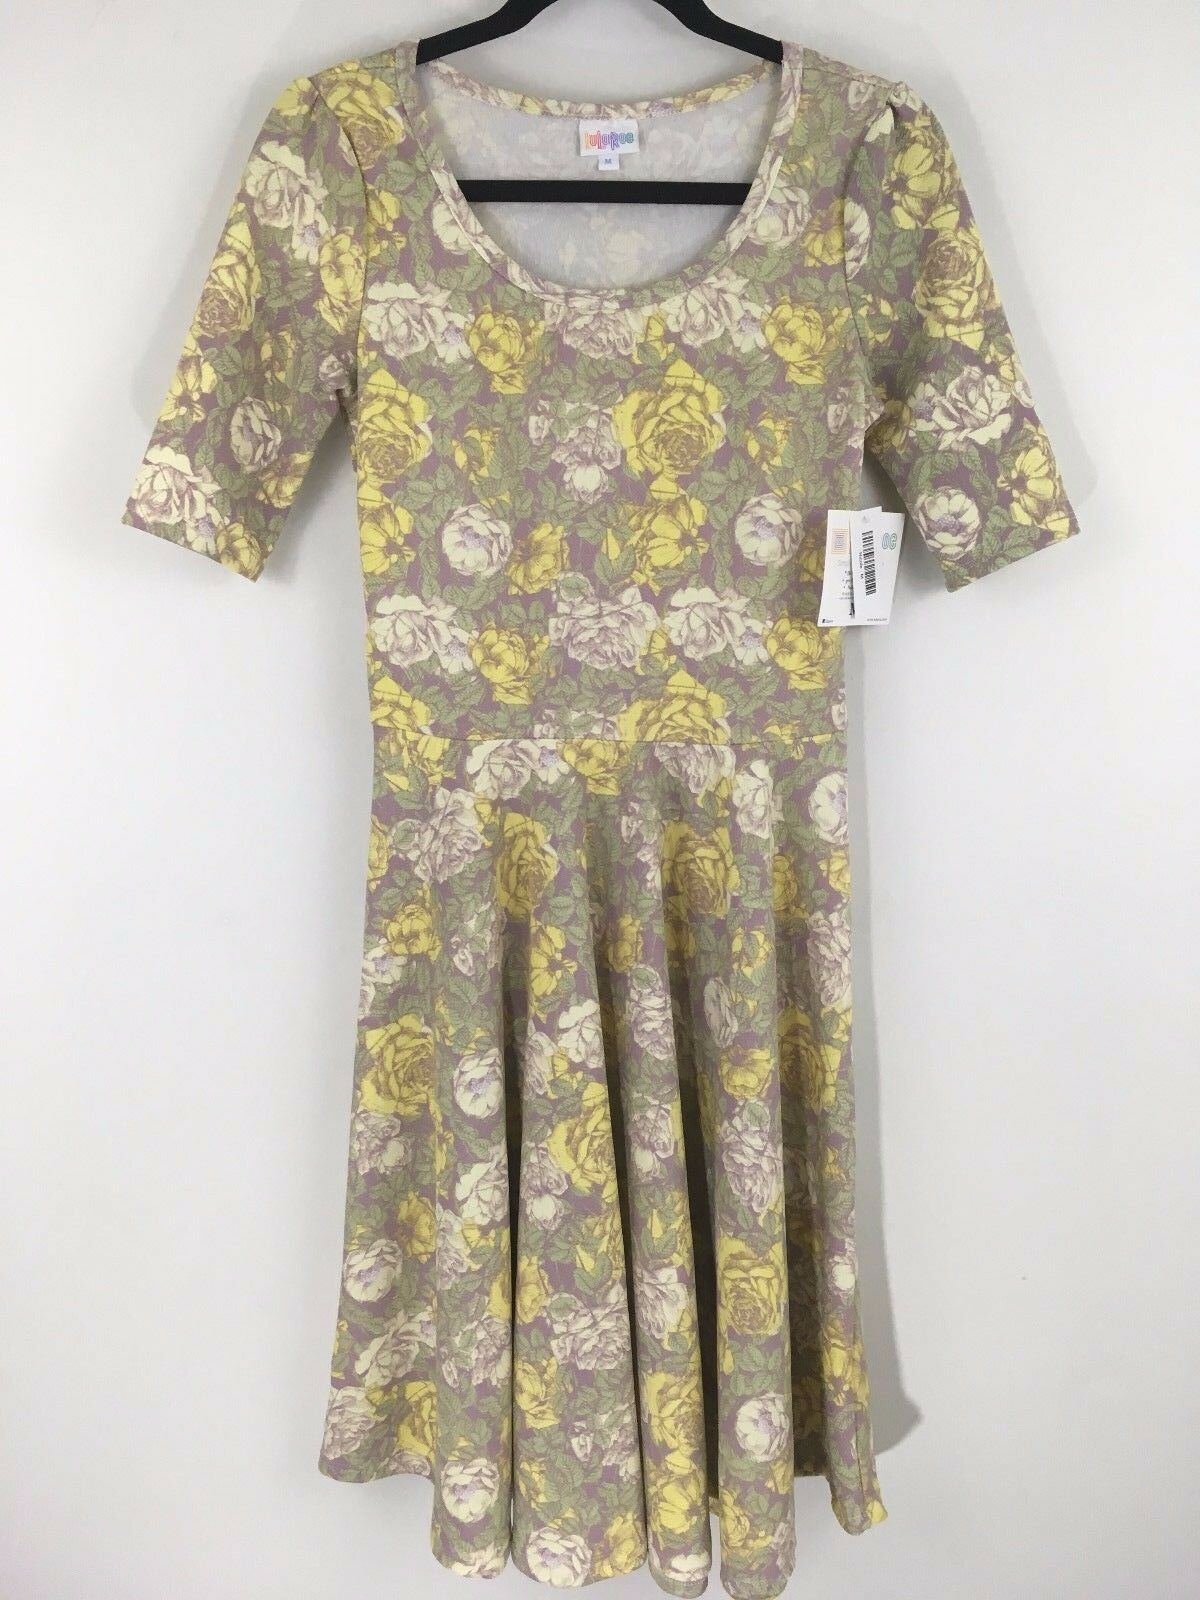 LuLaRoe - Nicole Dress - Yellow Green Tan Floral - Knee Length Women's Size M